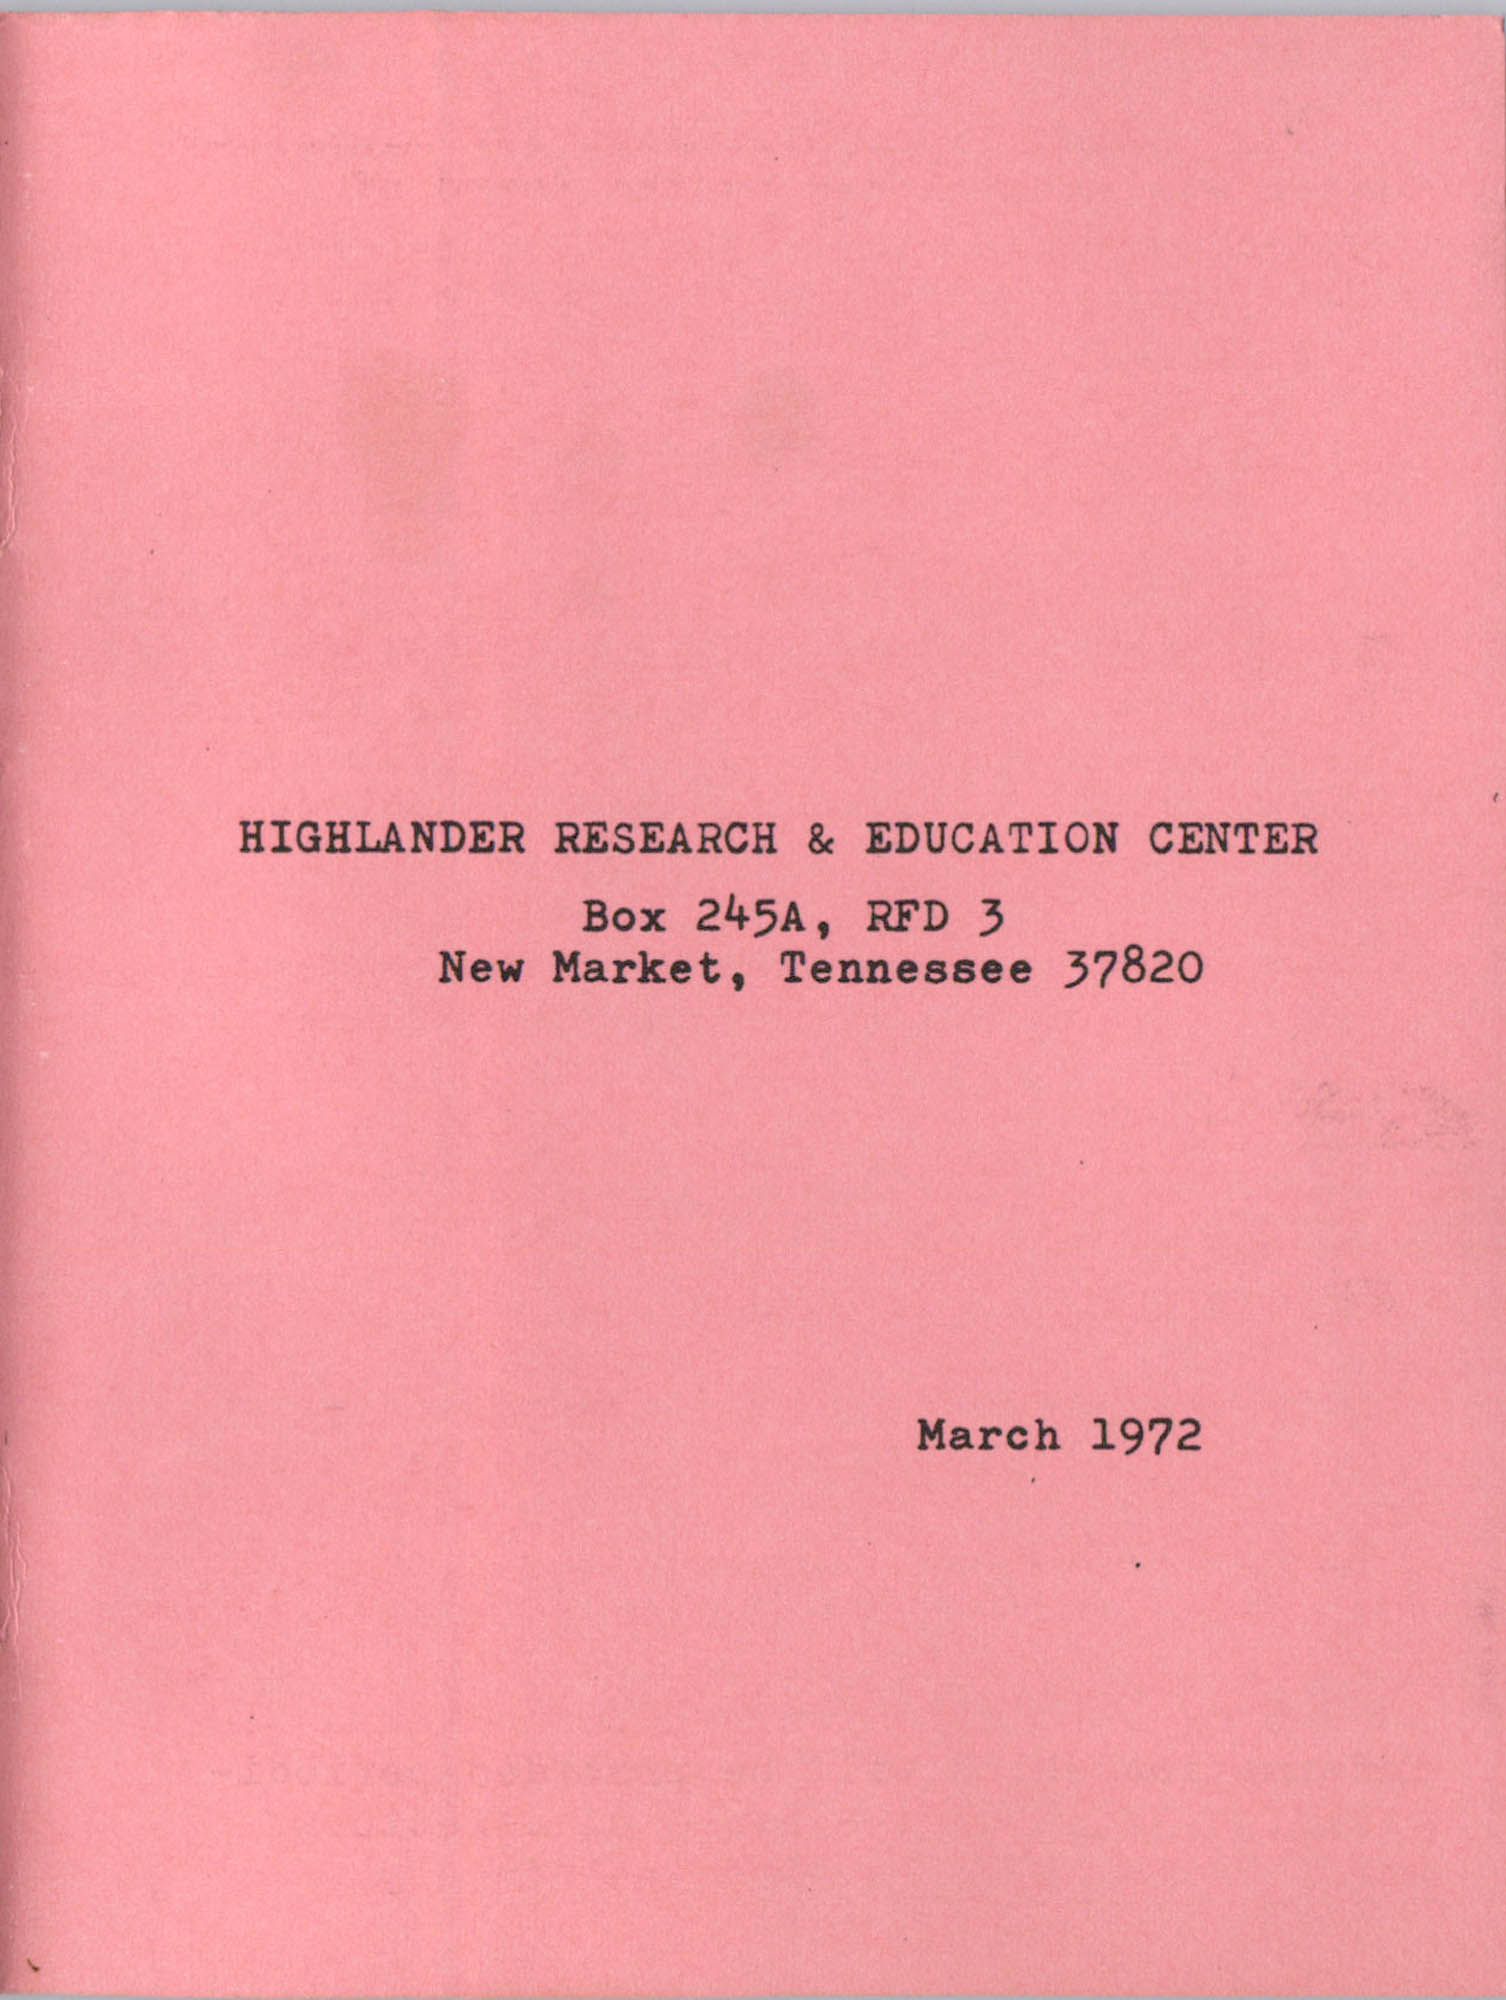 Highlander Research and Educational Center's Committee on Resources Directory, Back Cover Interior